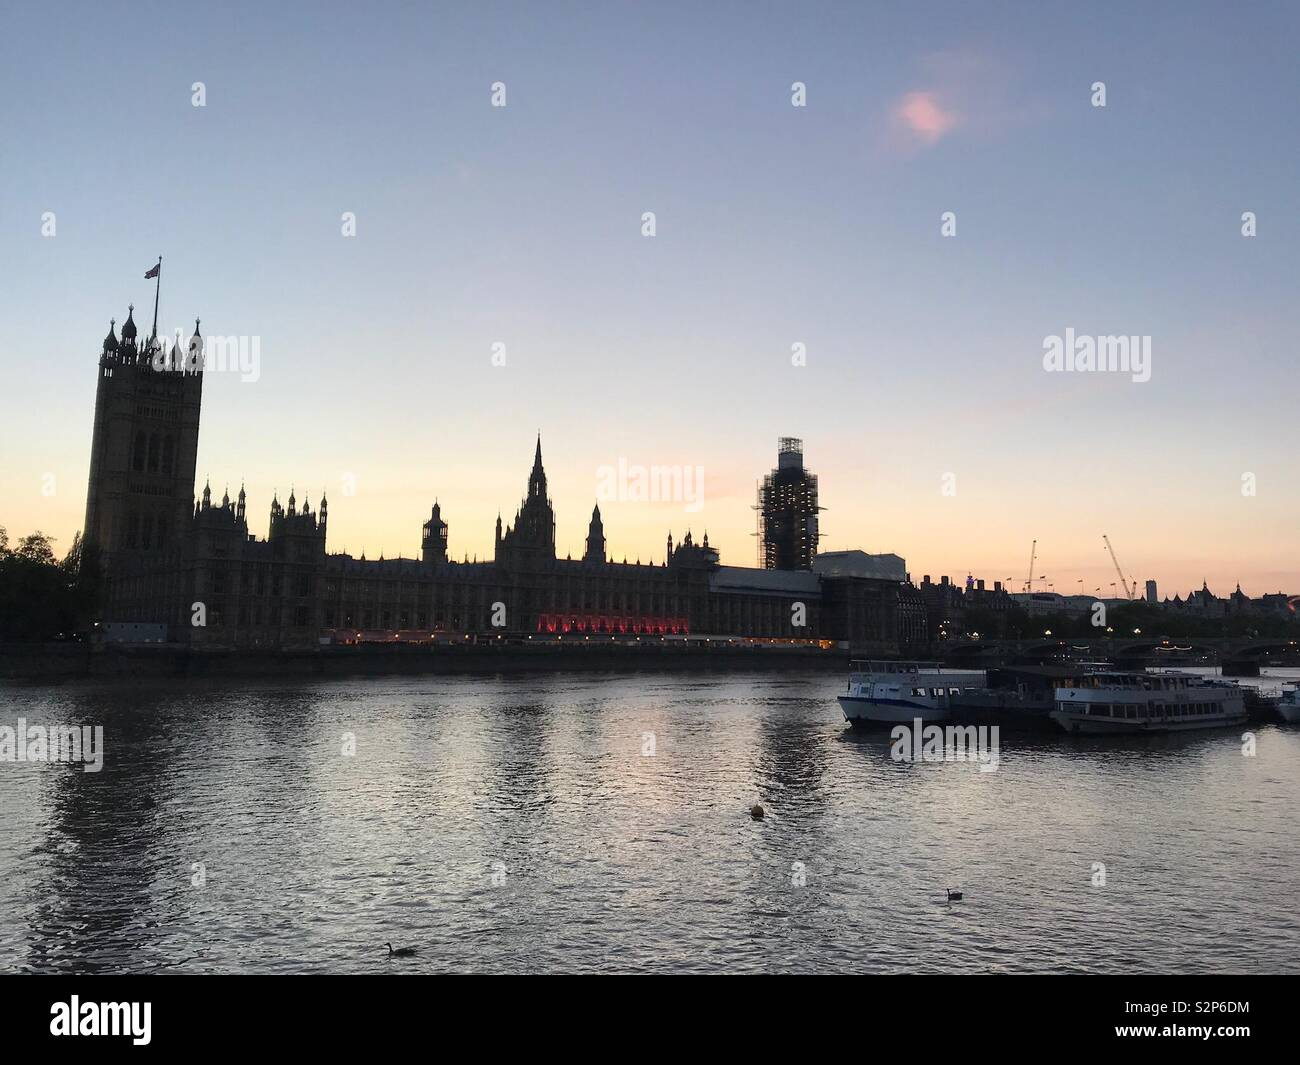 The Houses of Parliament at sunset - Stock Image